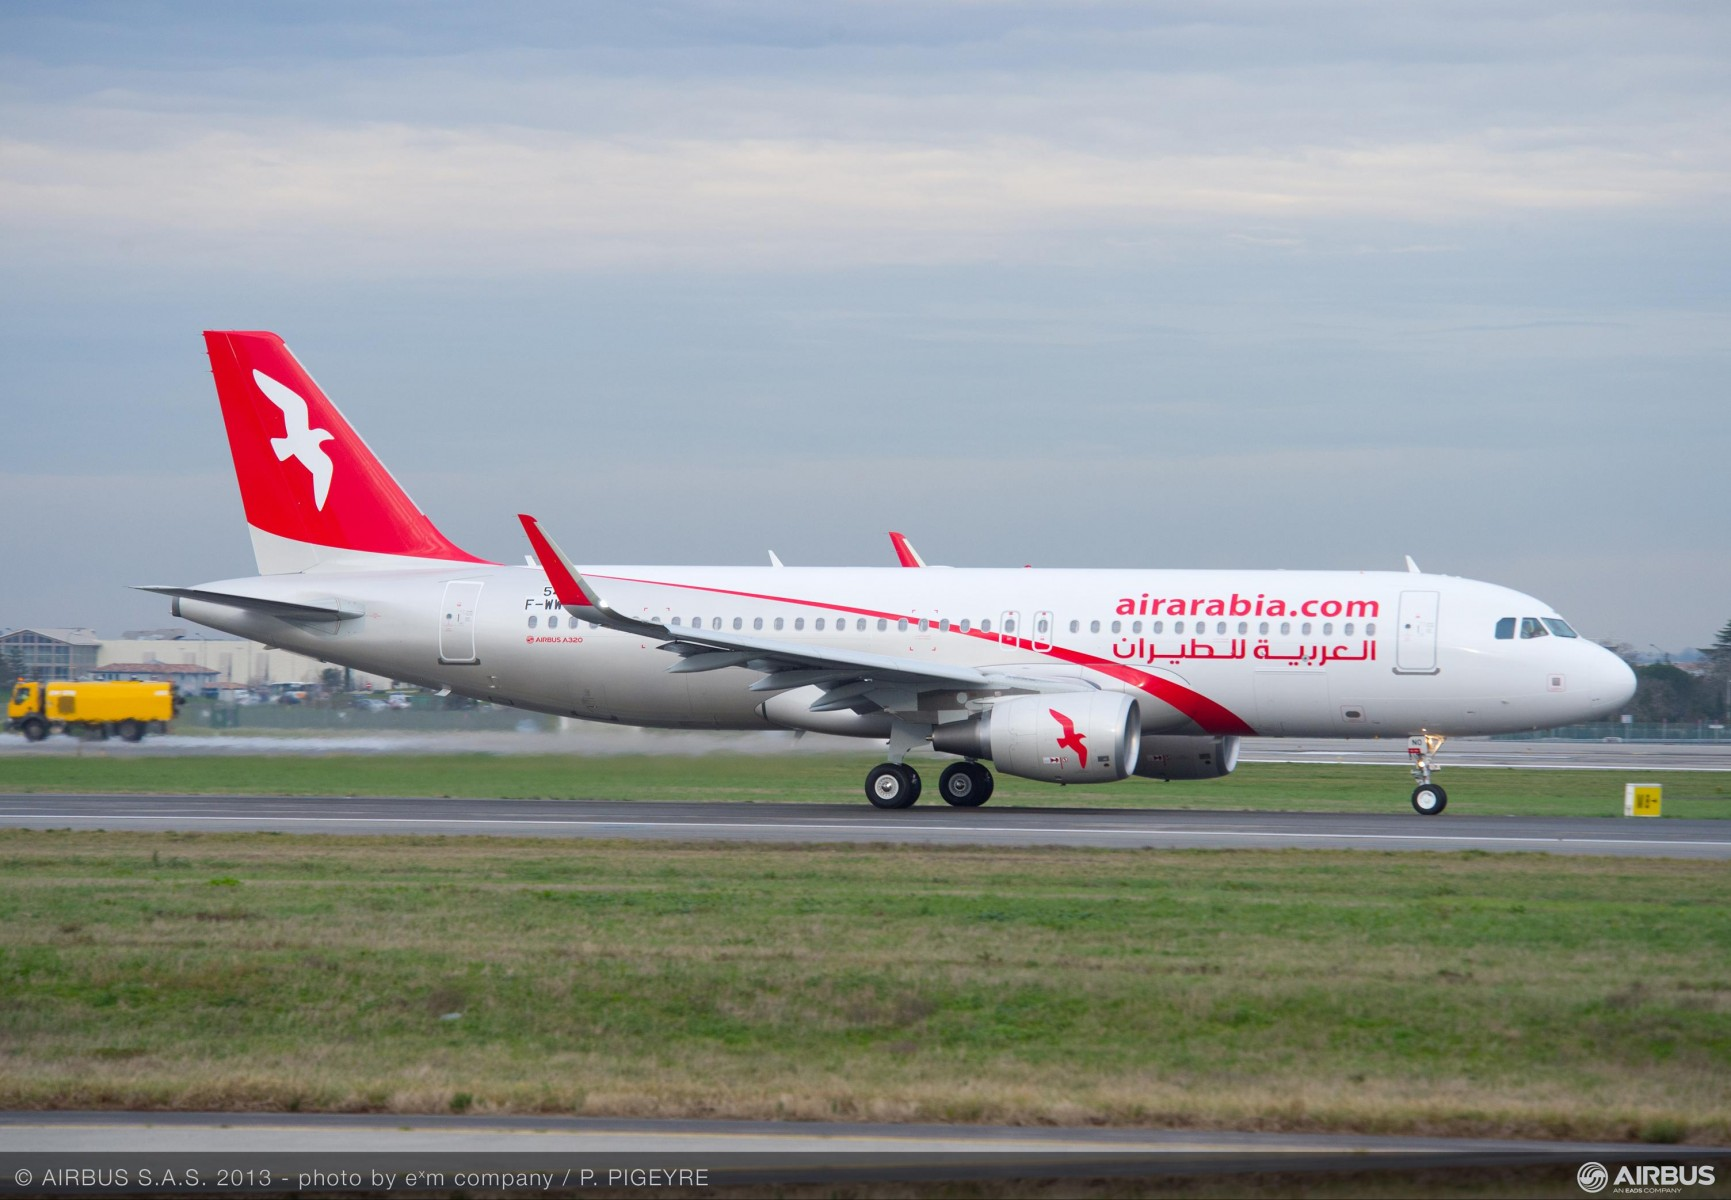 Multan joins air arabia s expanding pakistan network - Air arabia sharjah office ...